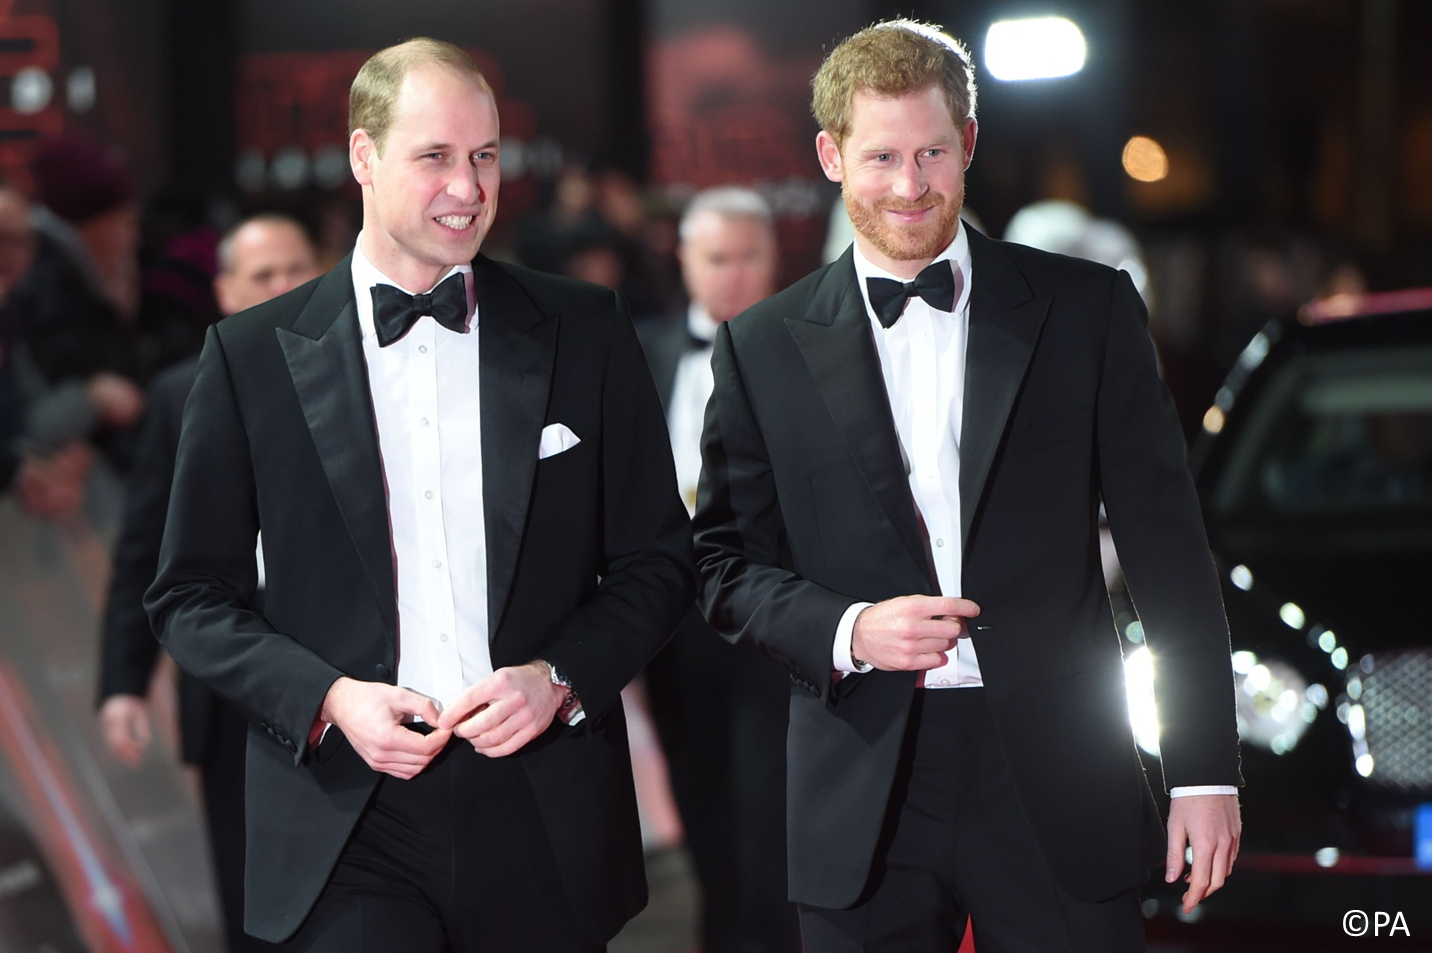 Prince Harry asks William to be best man at royal wedding